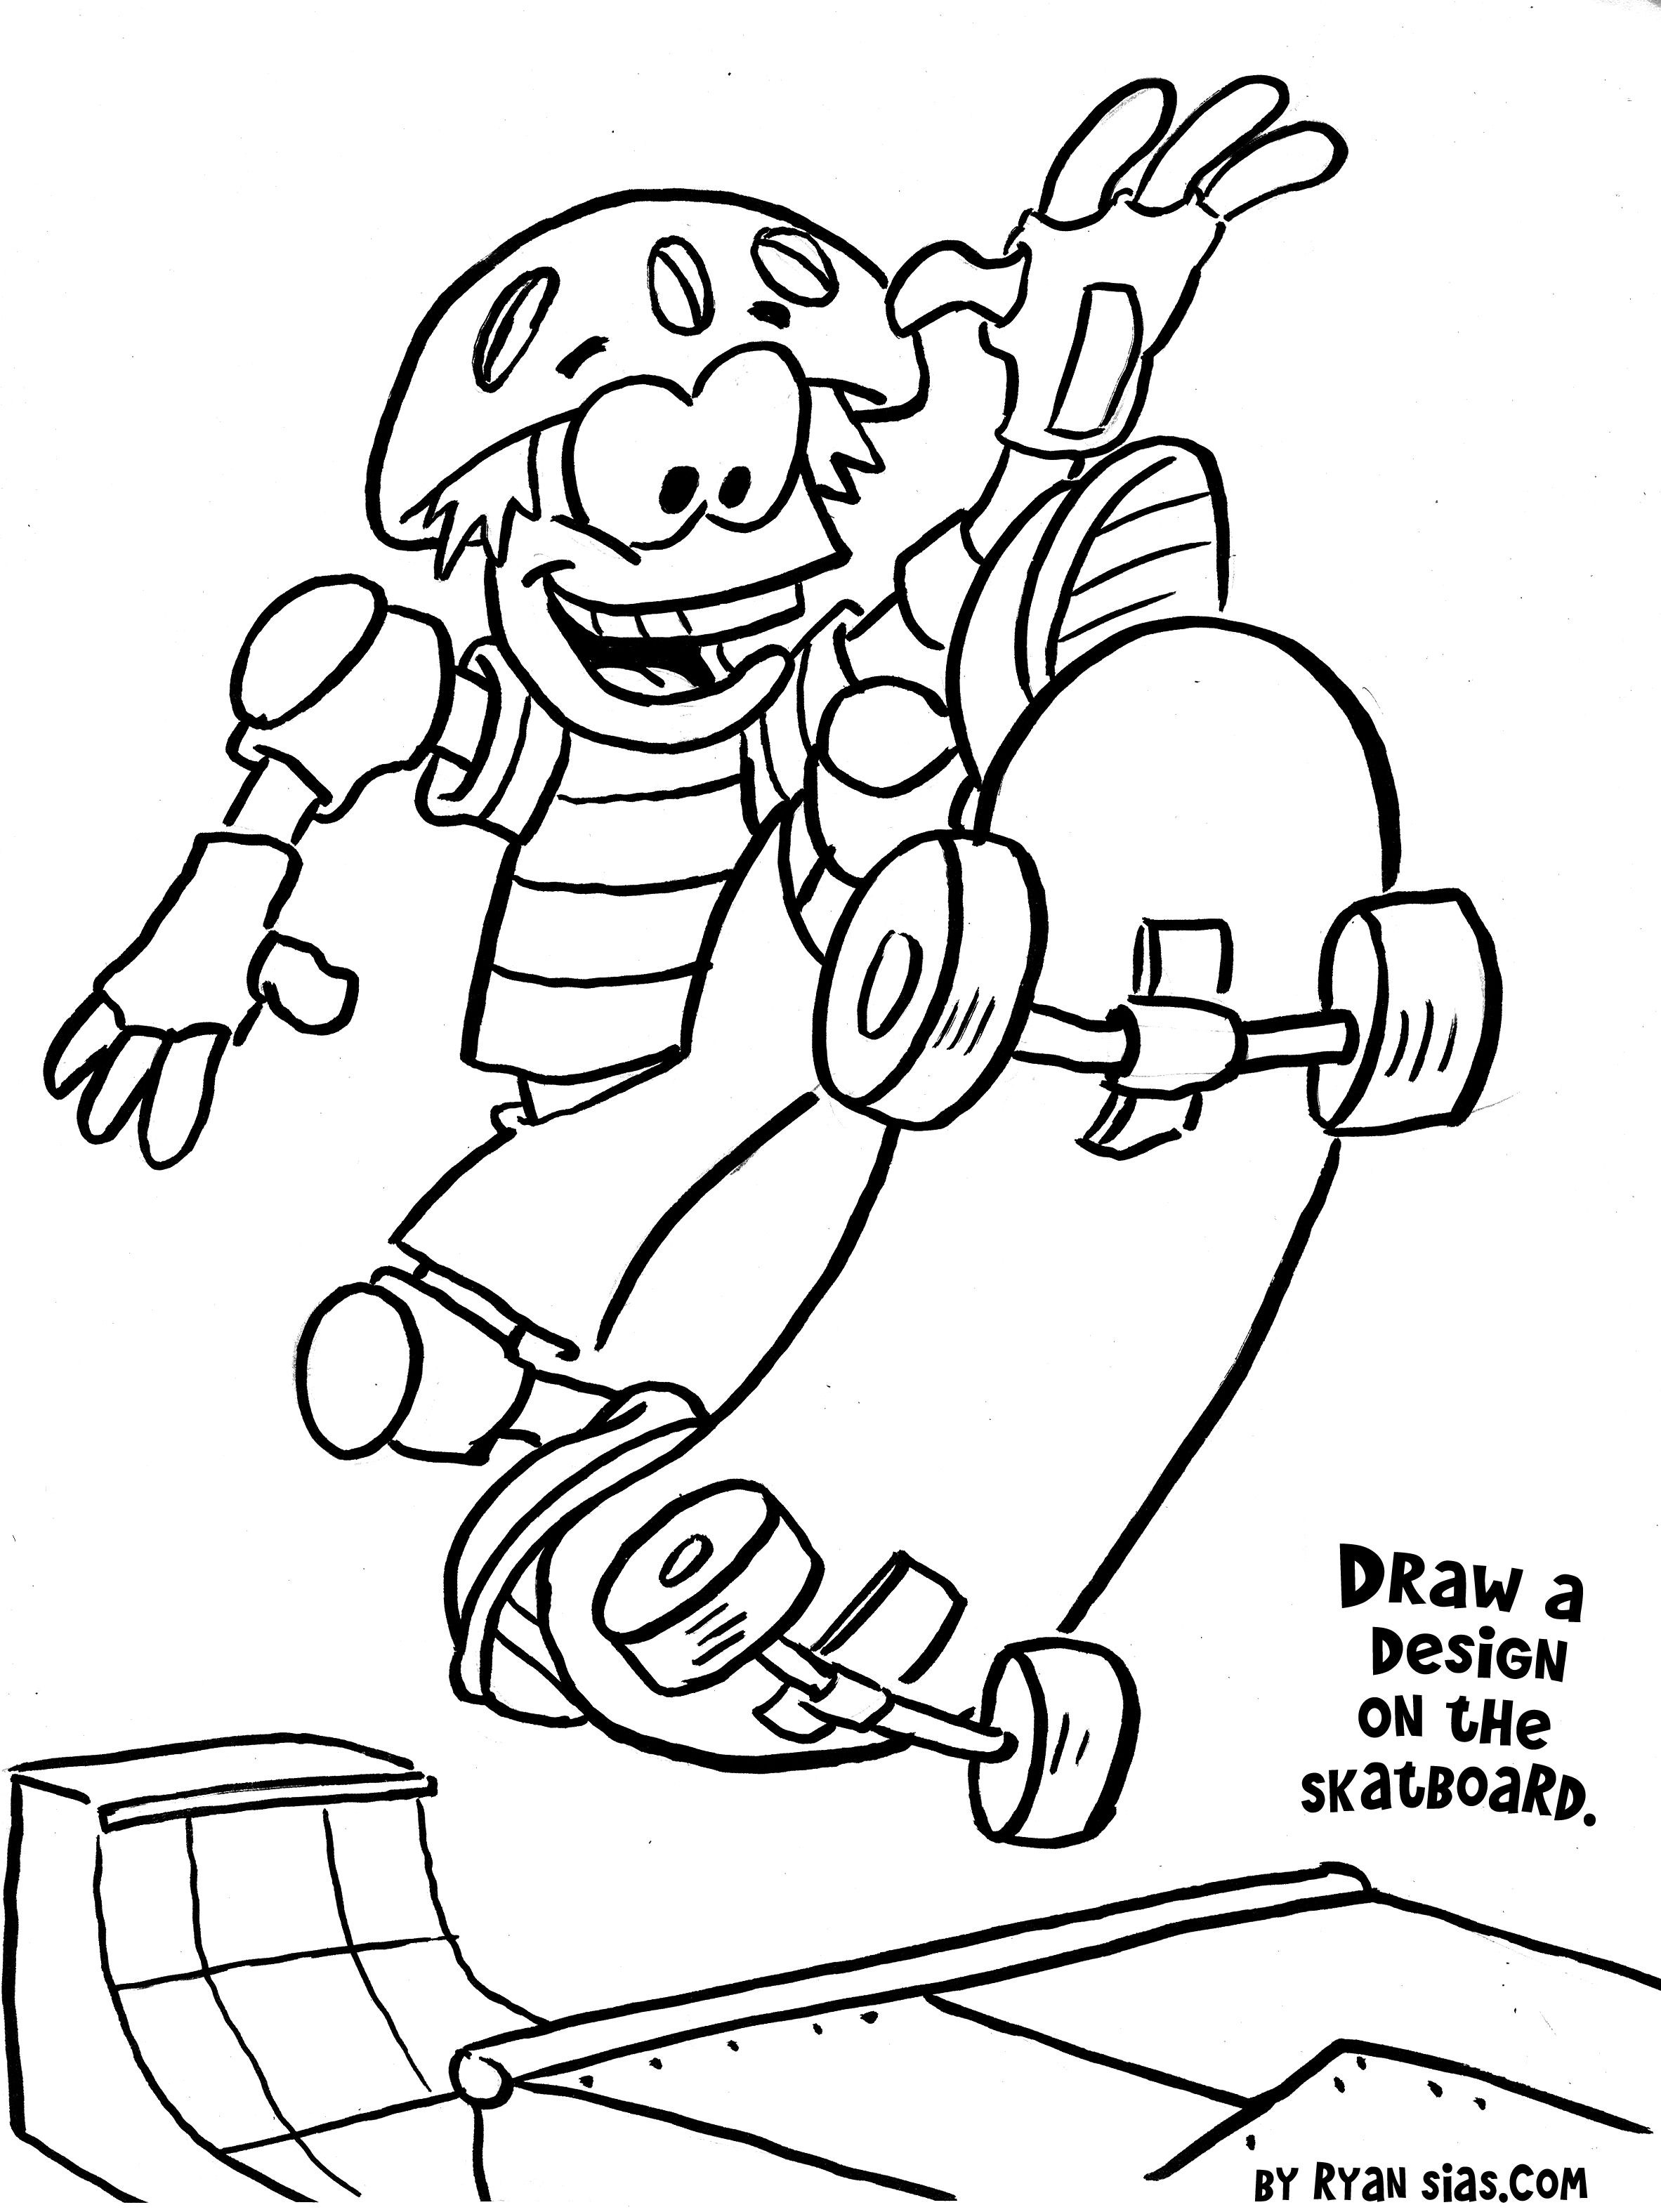 free printable sports coloring pages skateboard gianfredanet - Sports Coloring Pages